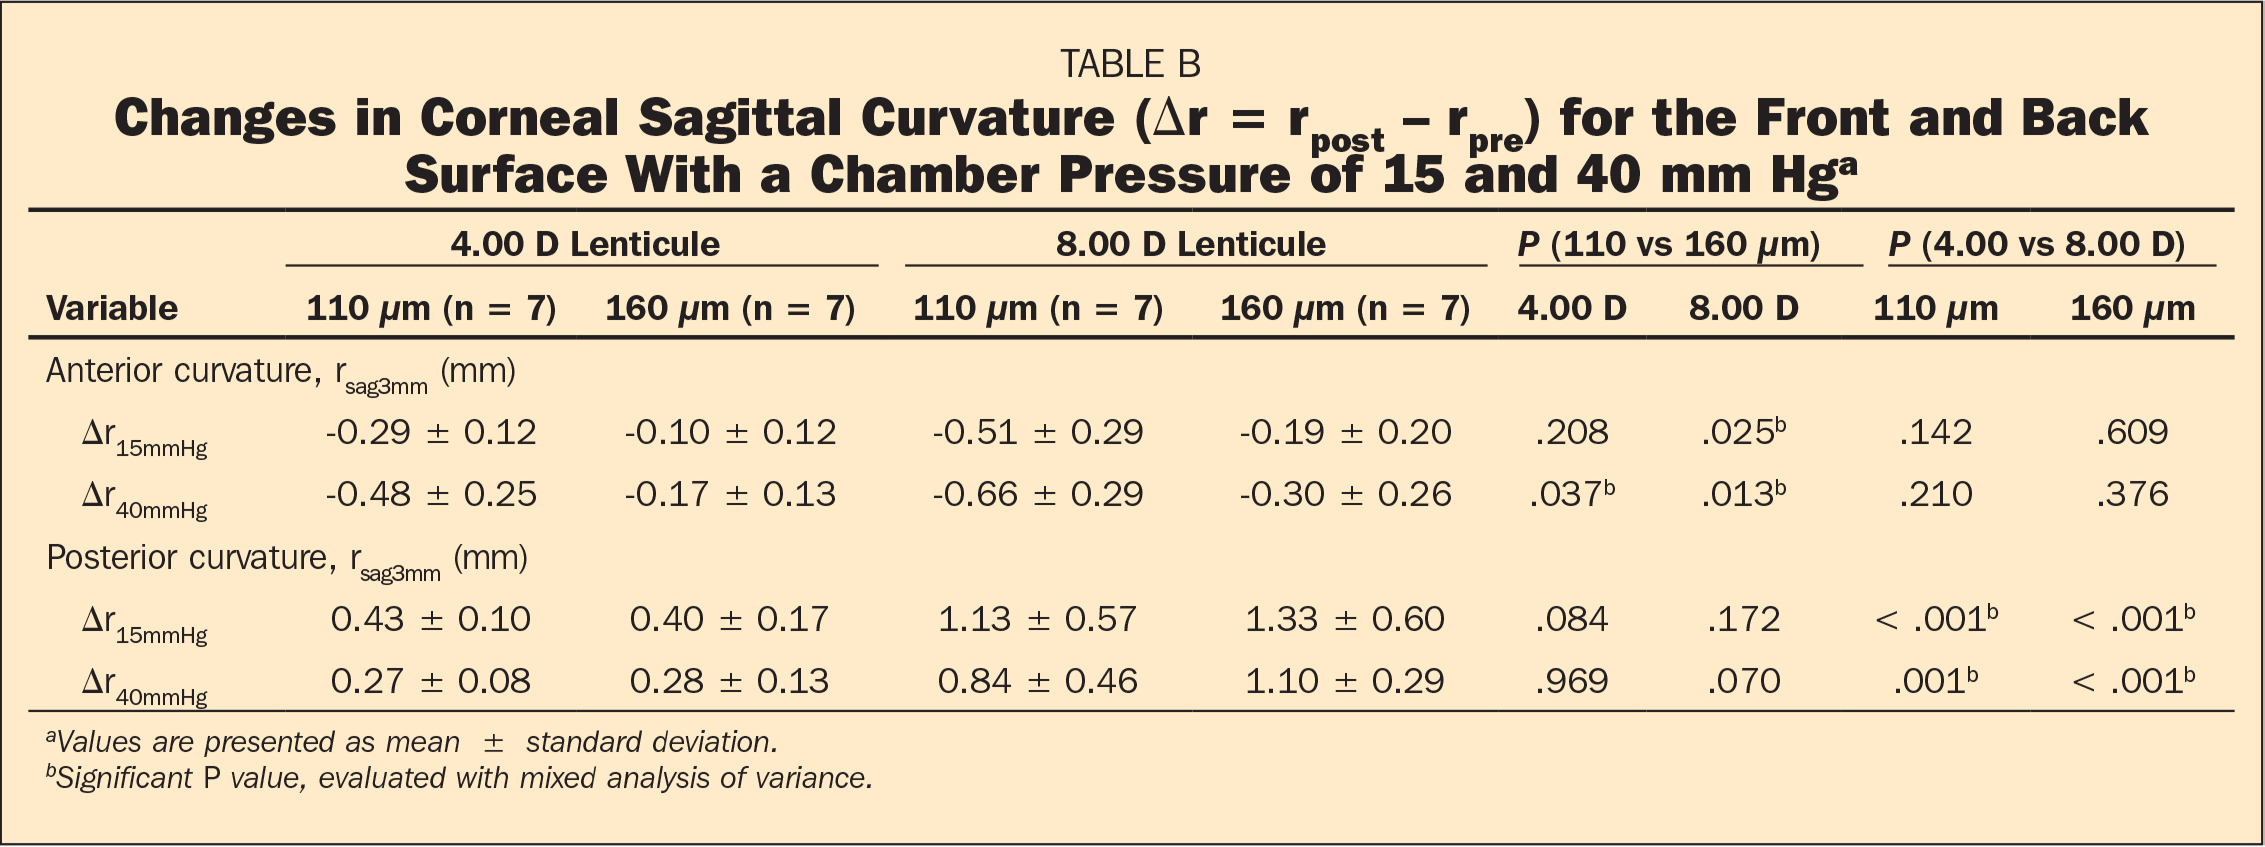 Changes in Corneal Sagittal Curvature (Δr = rpost − rpre) for the Front and Back Surface With a Chamber Pressure of 15 and 40 mm Hga